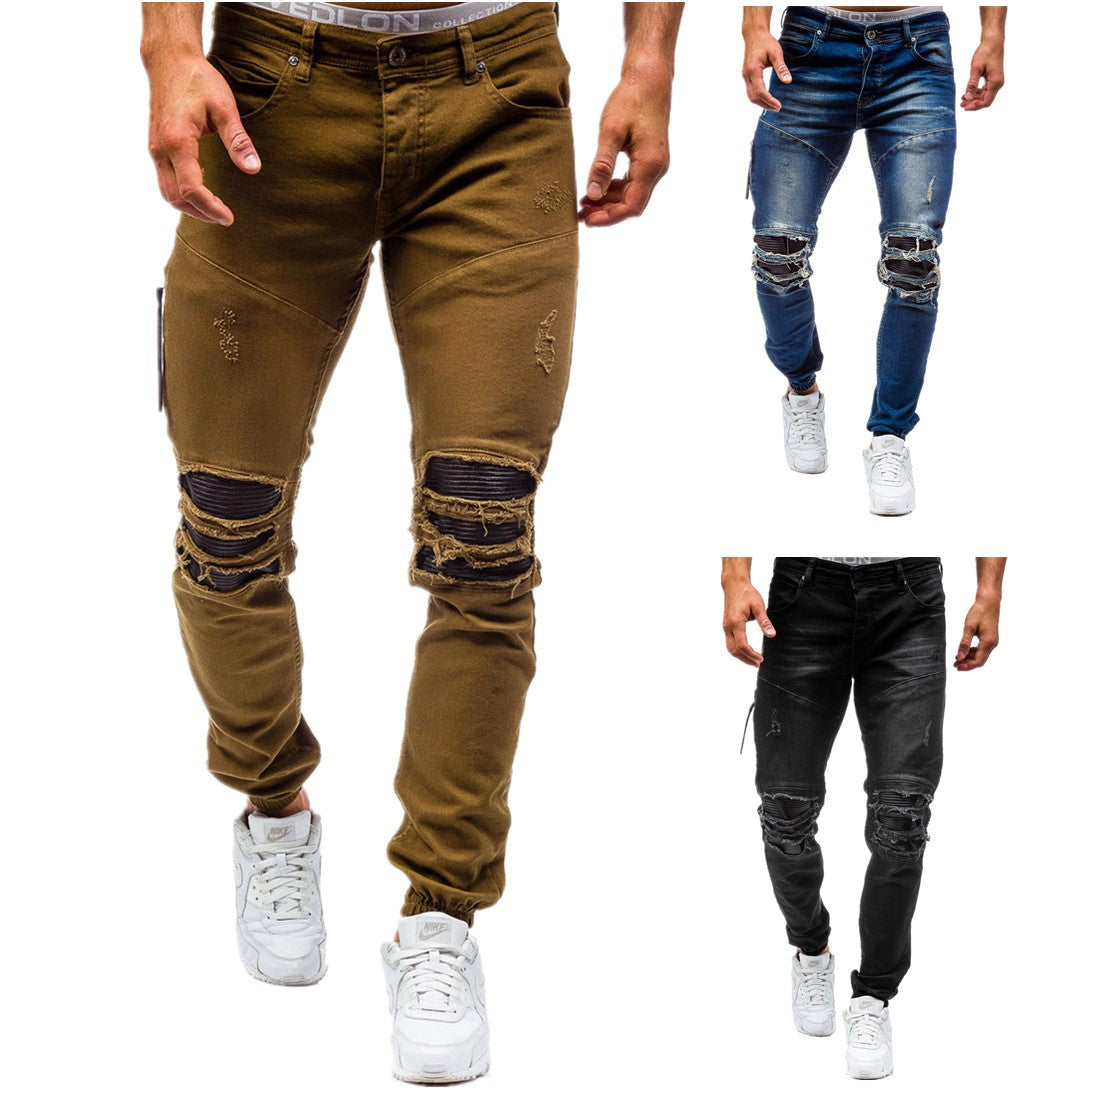 034bec24 Ripped Knee Cool Damaged Biker Style Men Slim Fit Jogger Pants Jeans -  FanFreakz